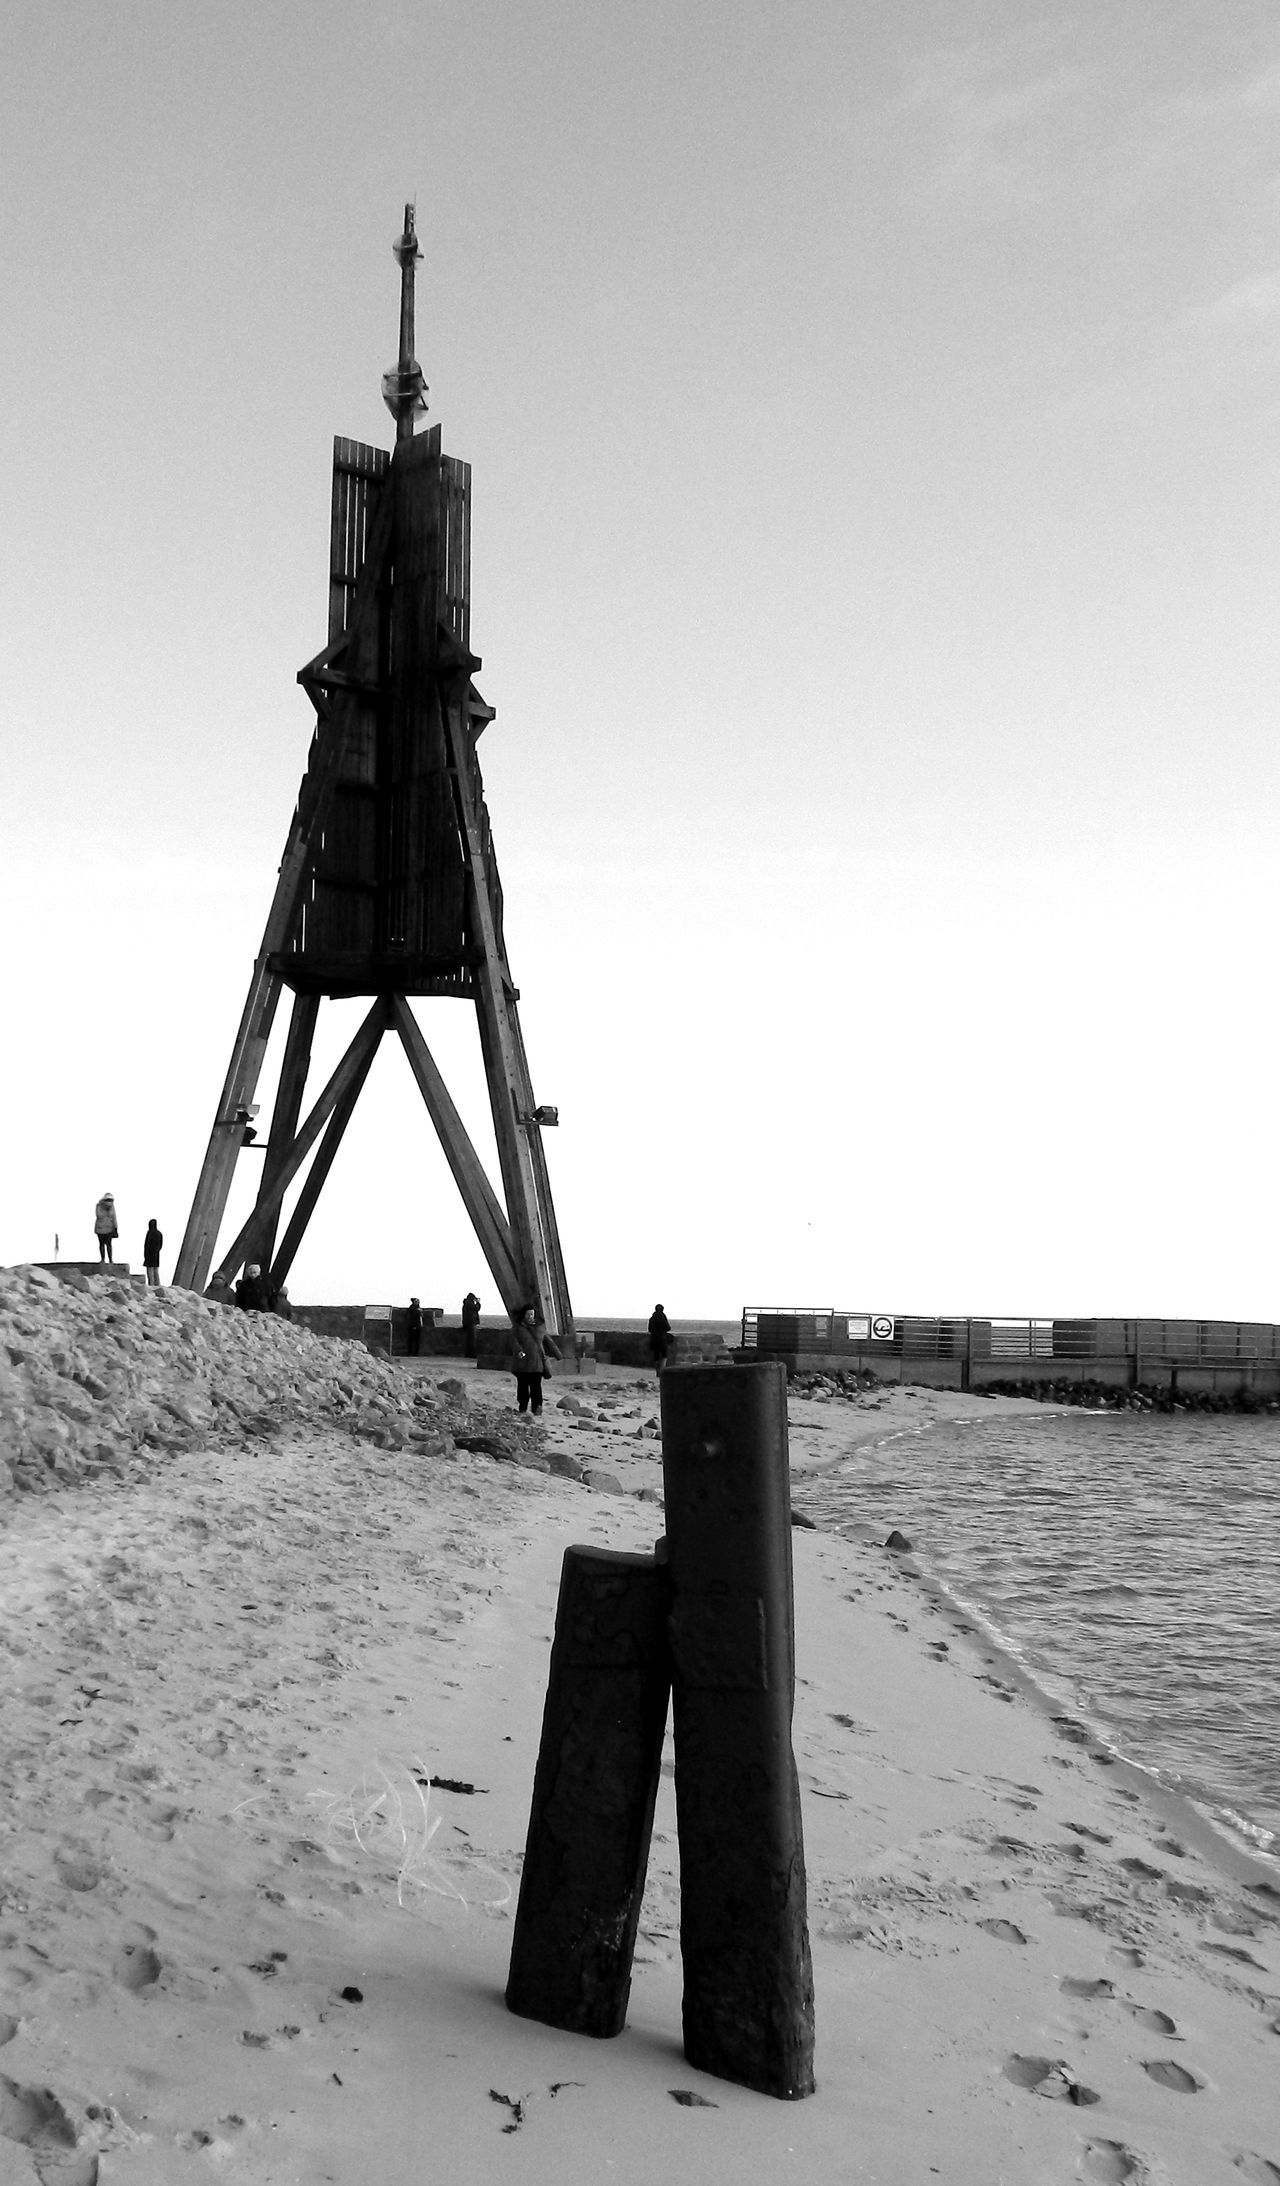 Kugelbake Cuxhaven Cuxhaven North See Cuxha8en Black And White Blackandwhite Schwarzweiß Schwarz & Weiß BLCK&WHT Black & White Blackandwhite Photography The KIOMI Collection Exceptional Photographs